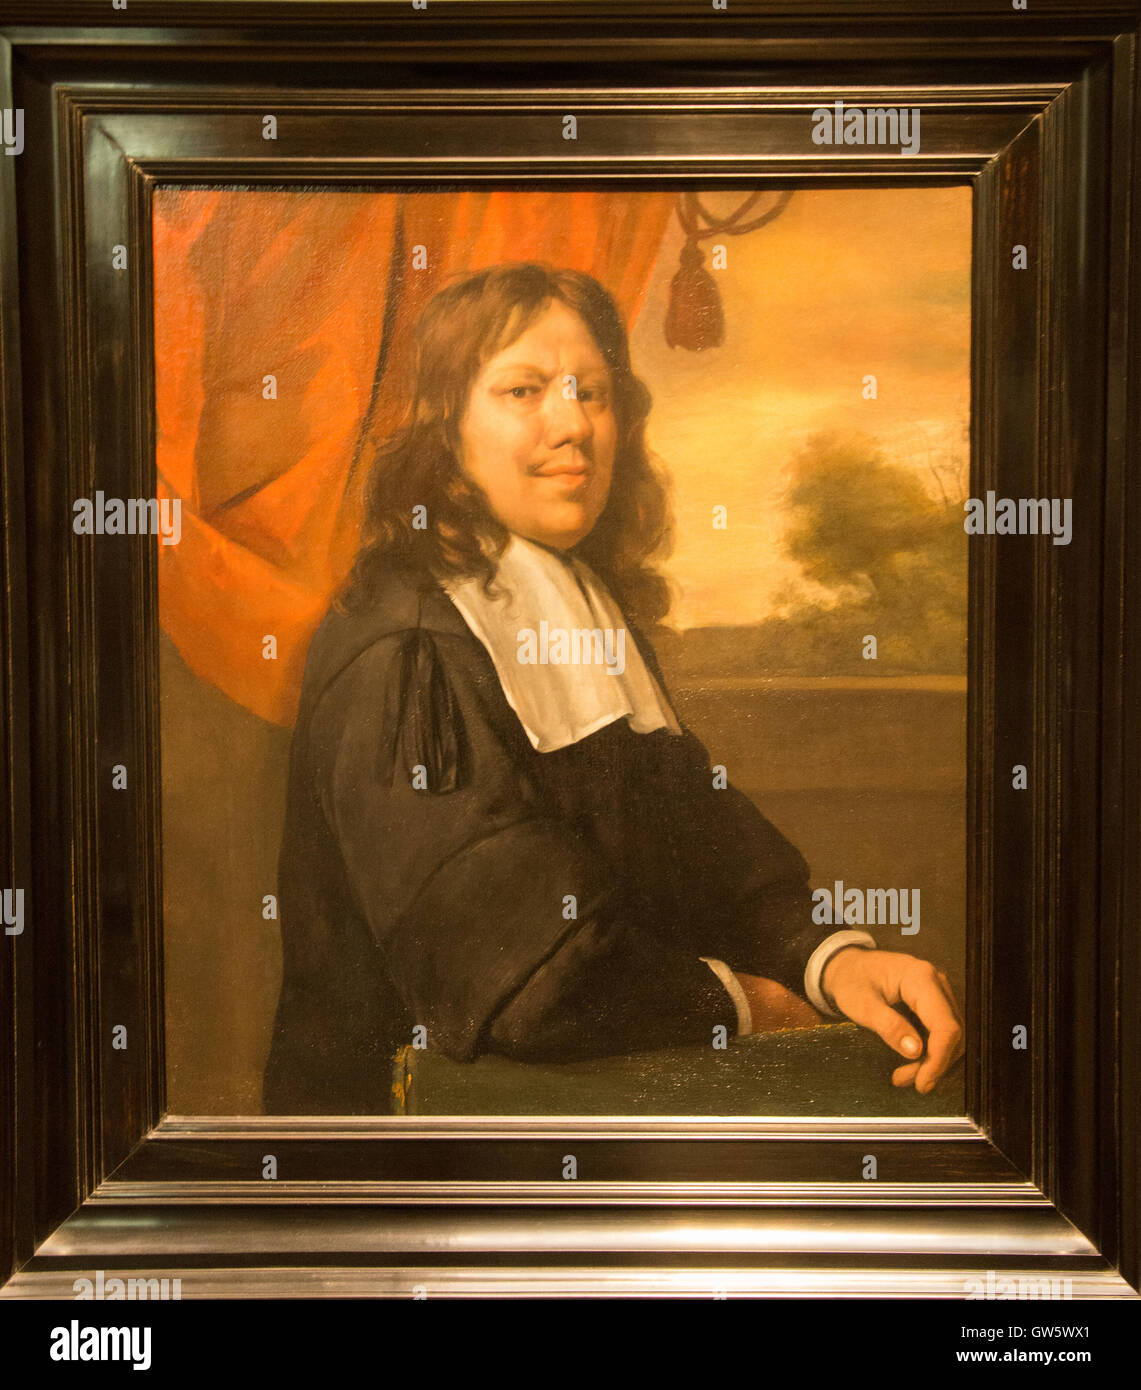 'selfportrait' 1670 jan havicksz steen - Stock Image